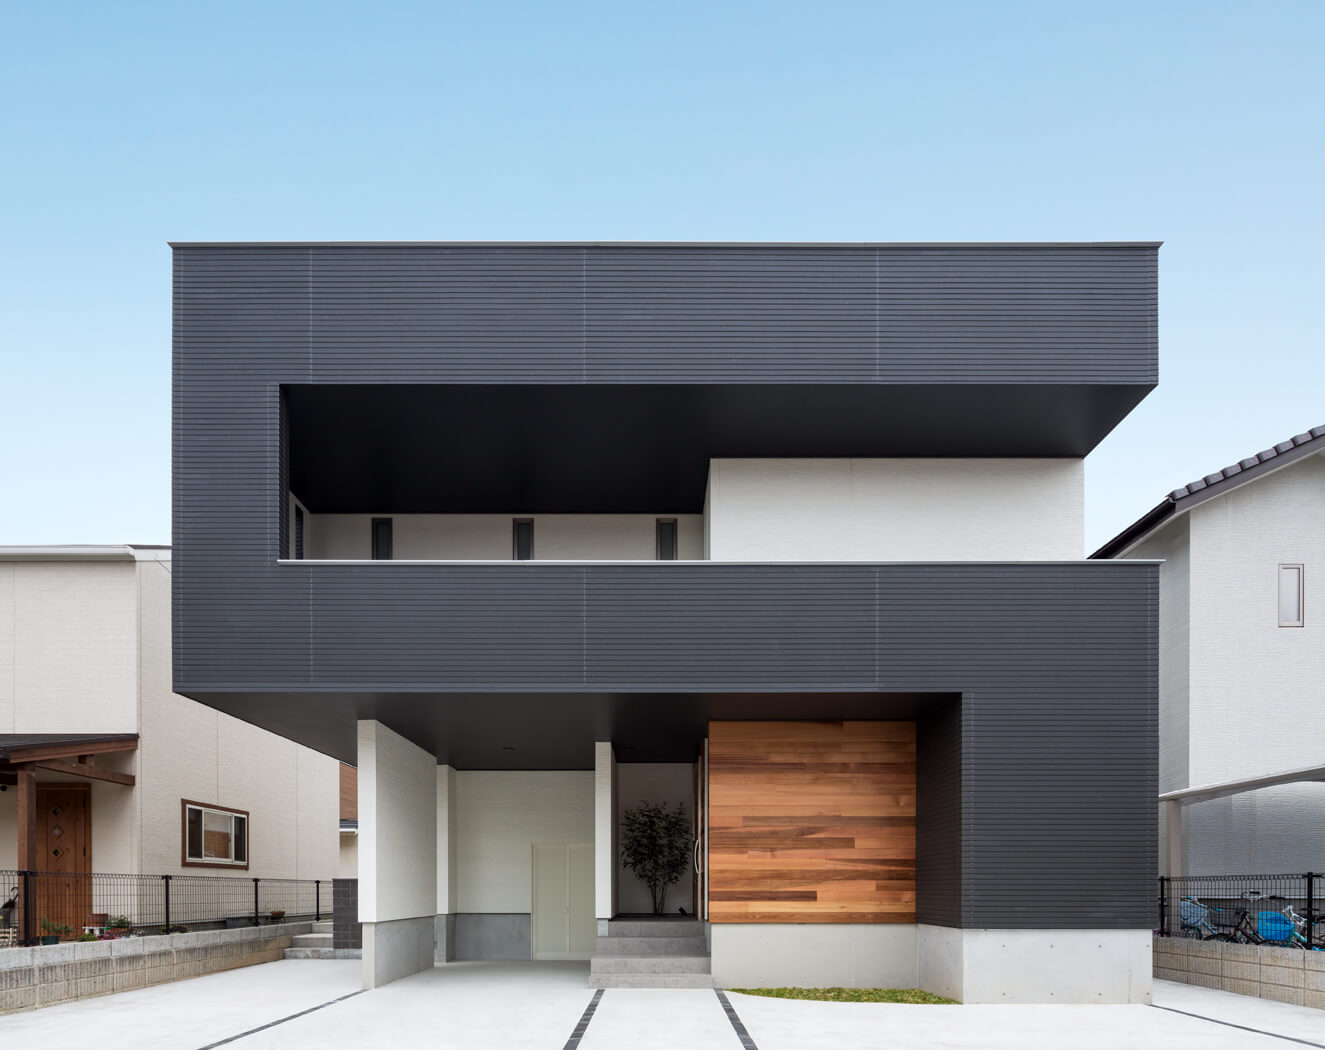 D house by architect show homeadore - Cubismo arquitectura ...